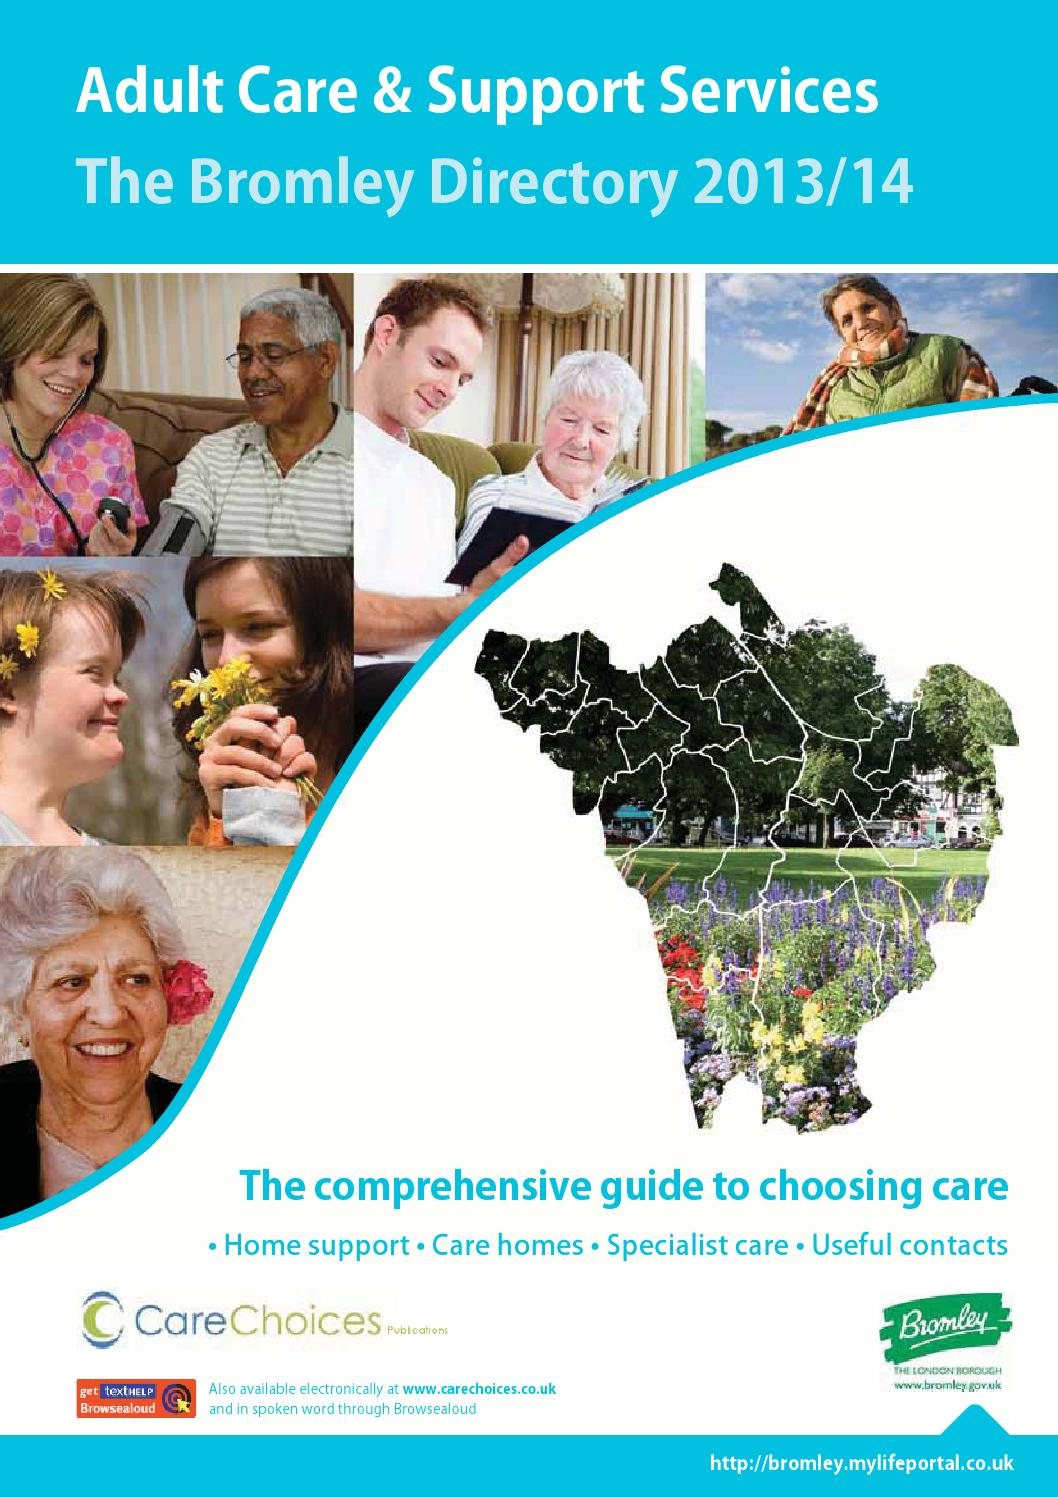 Bromley Directory Adult Care And Support Services 2013 14 By Choices Ltd